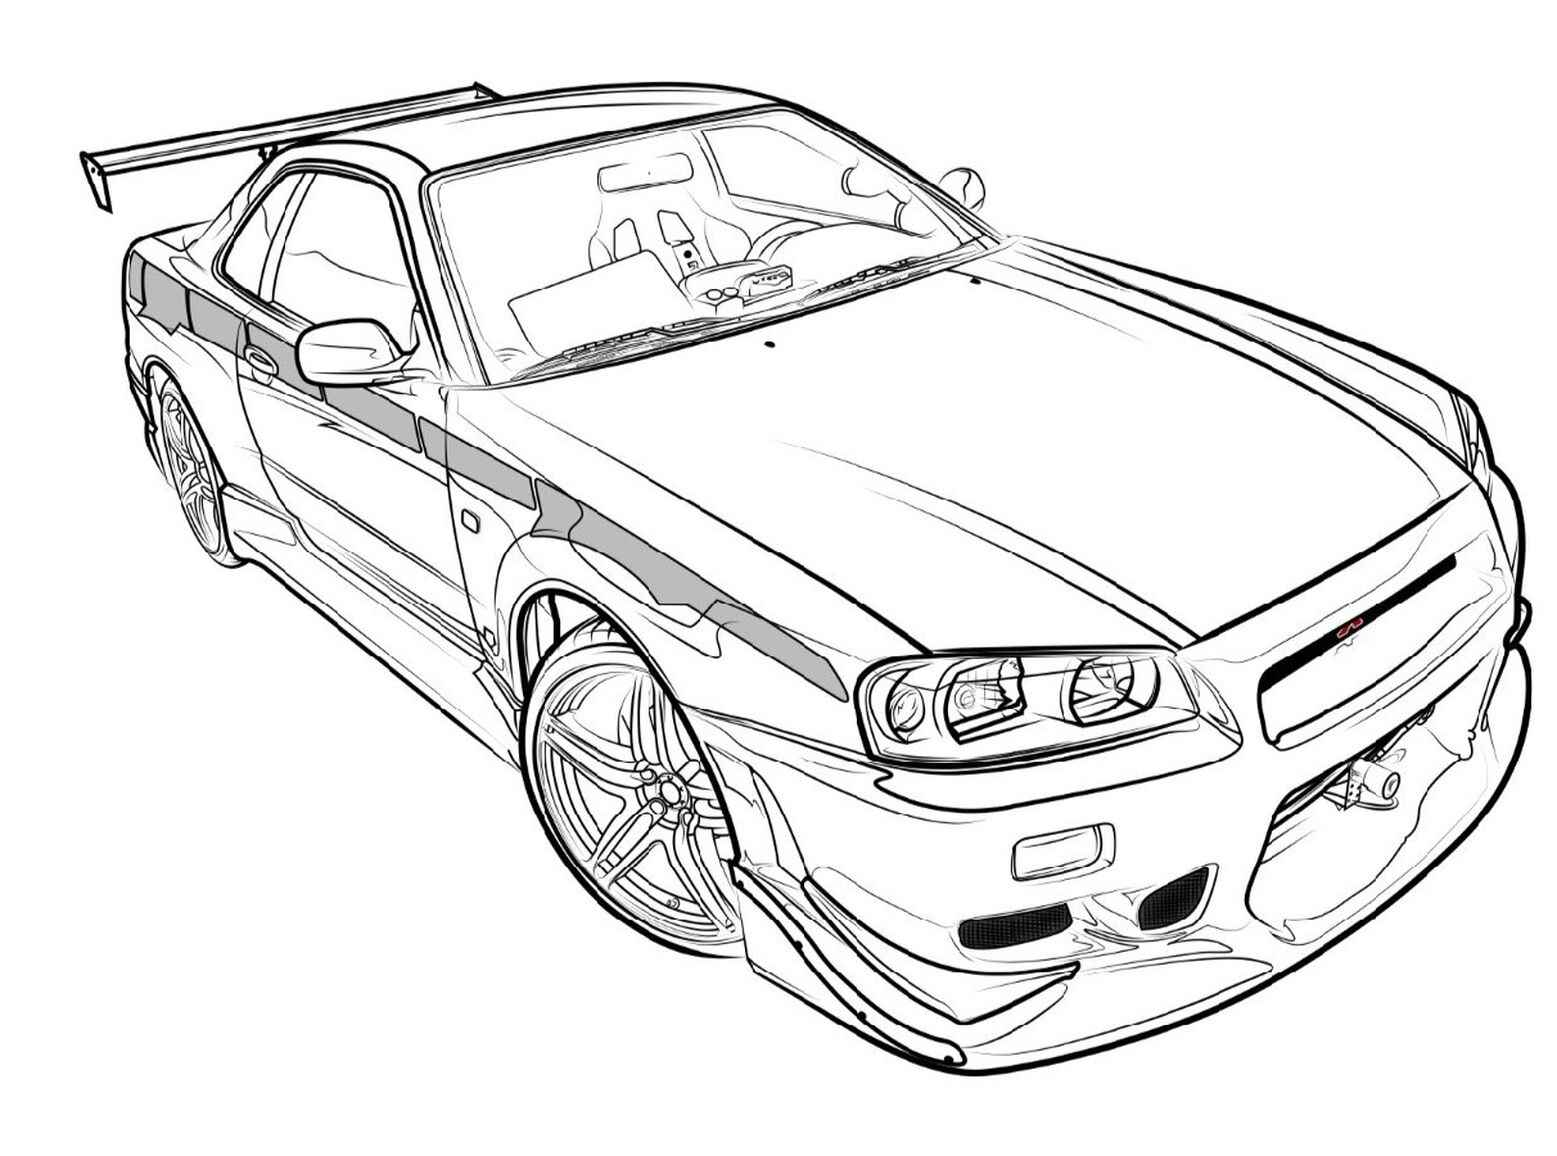 Legendary Skyline Gtr Fast And Furious Coloring Sheet